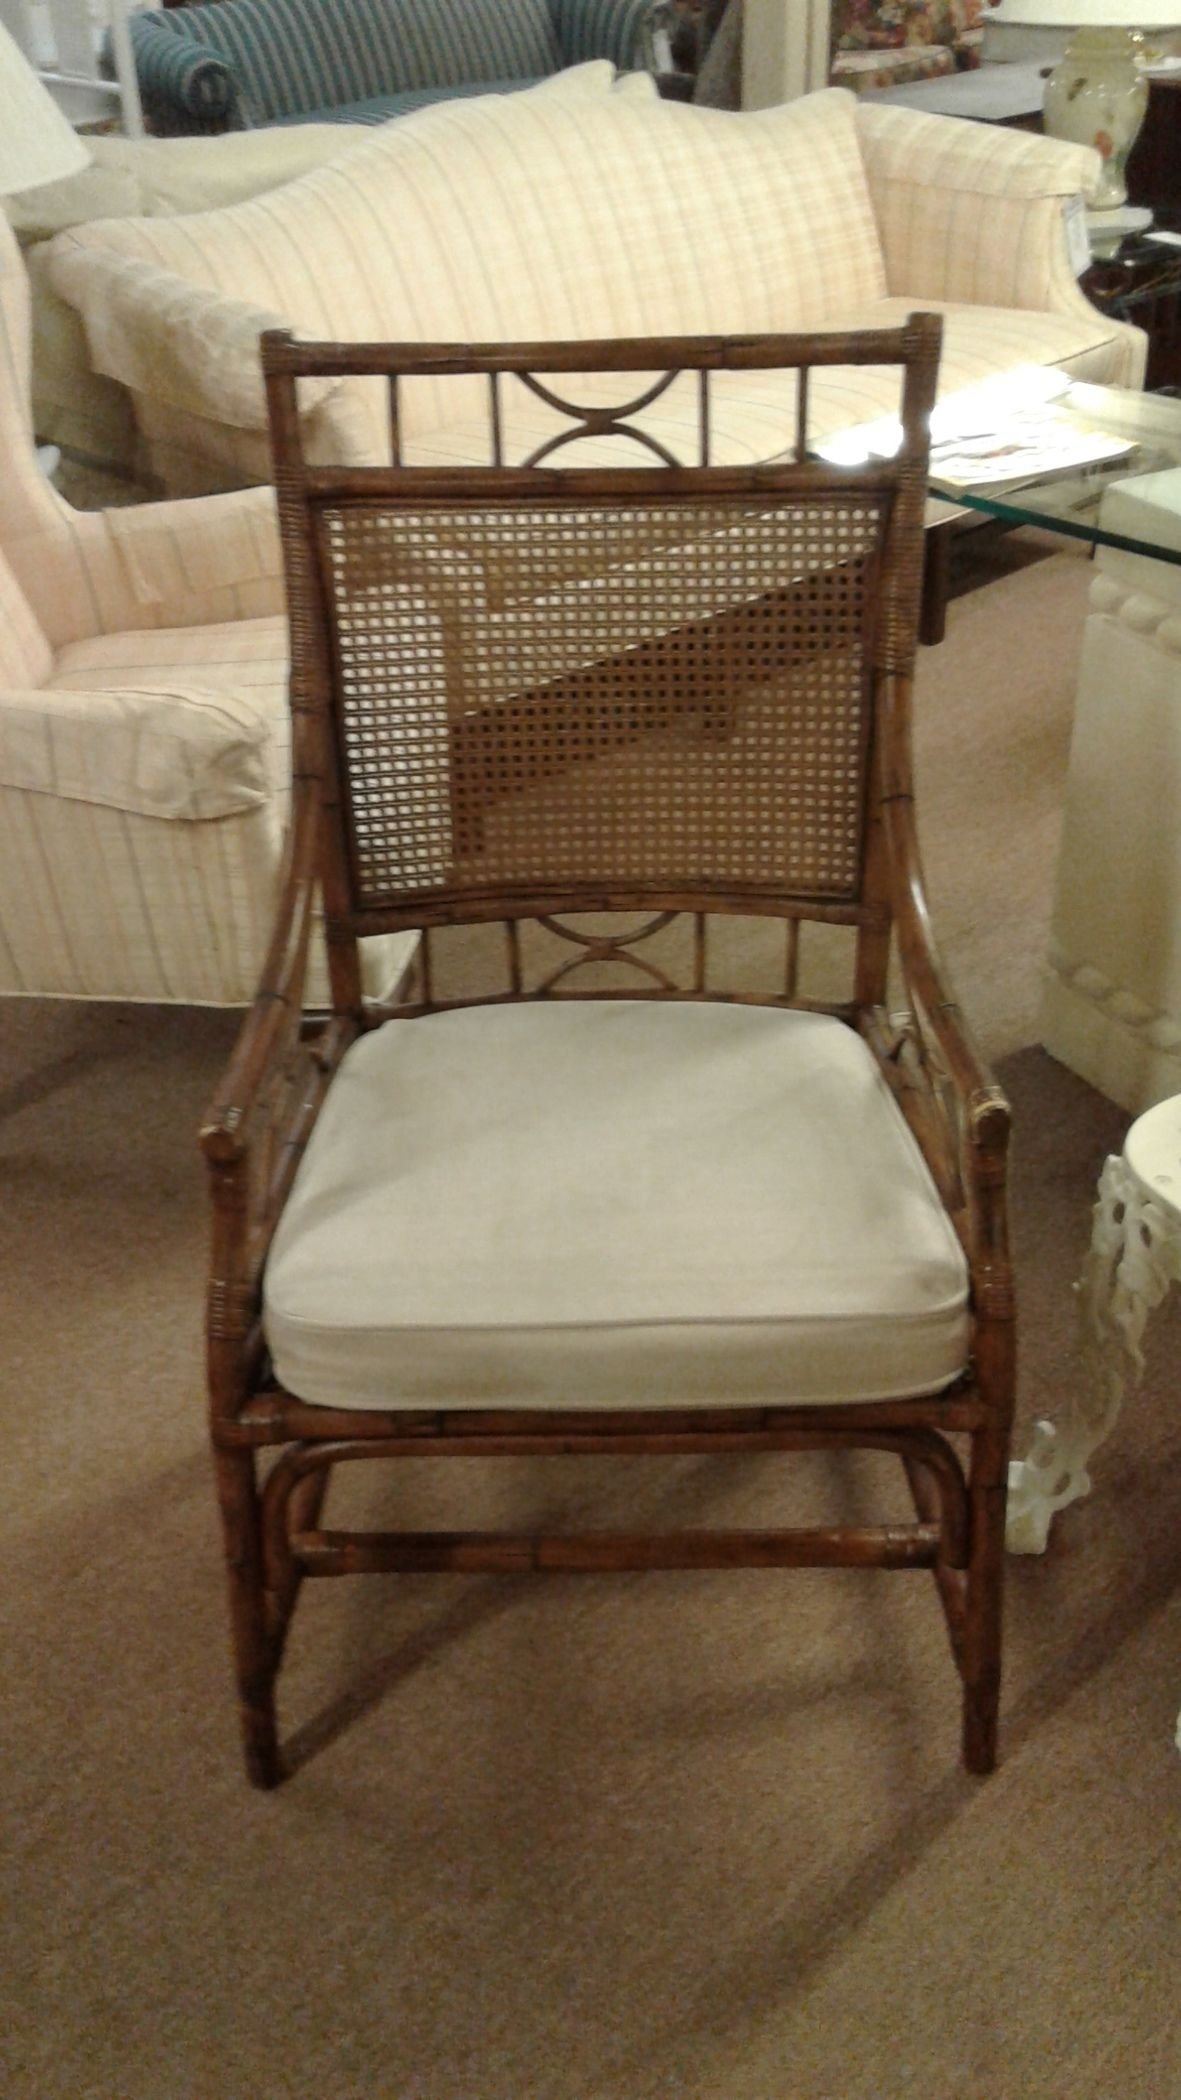 Broyhill Cane Amp Rattan Chair Delmarva Furniture Consignment